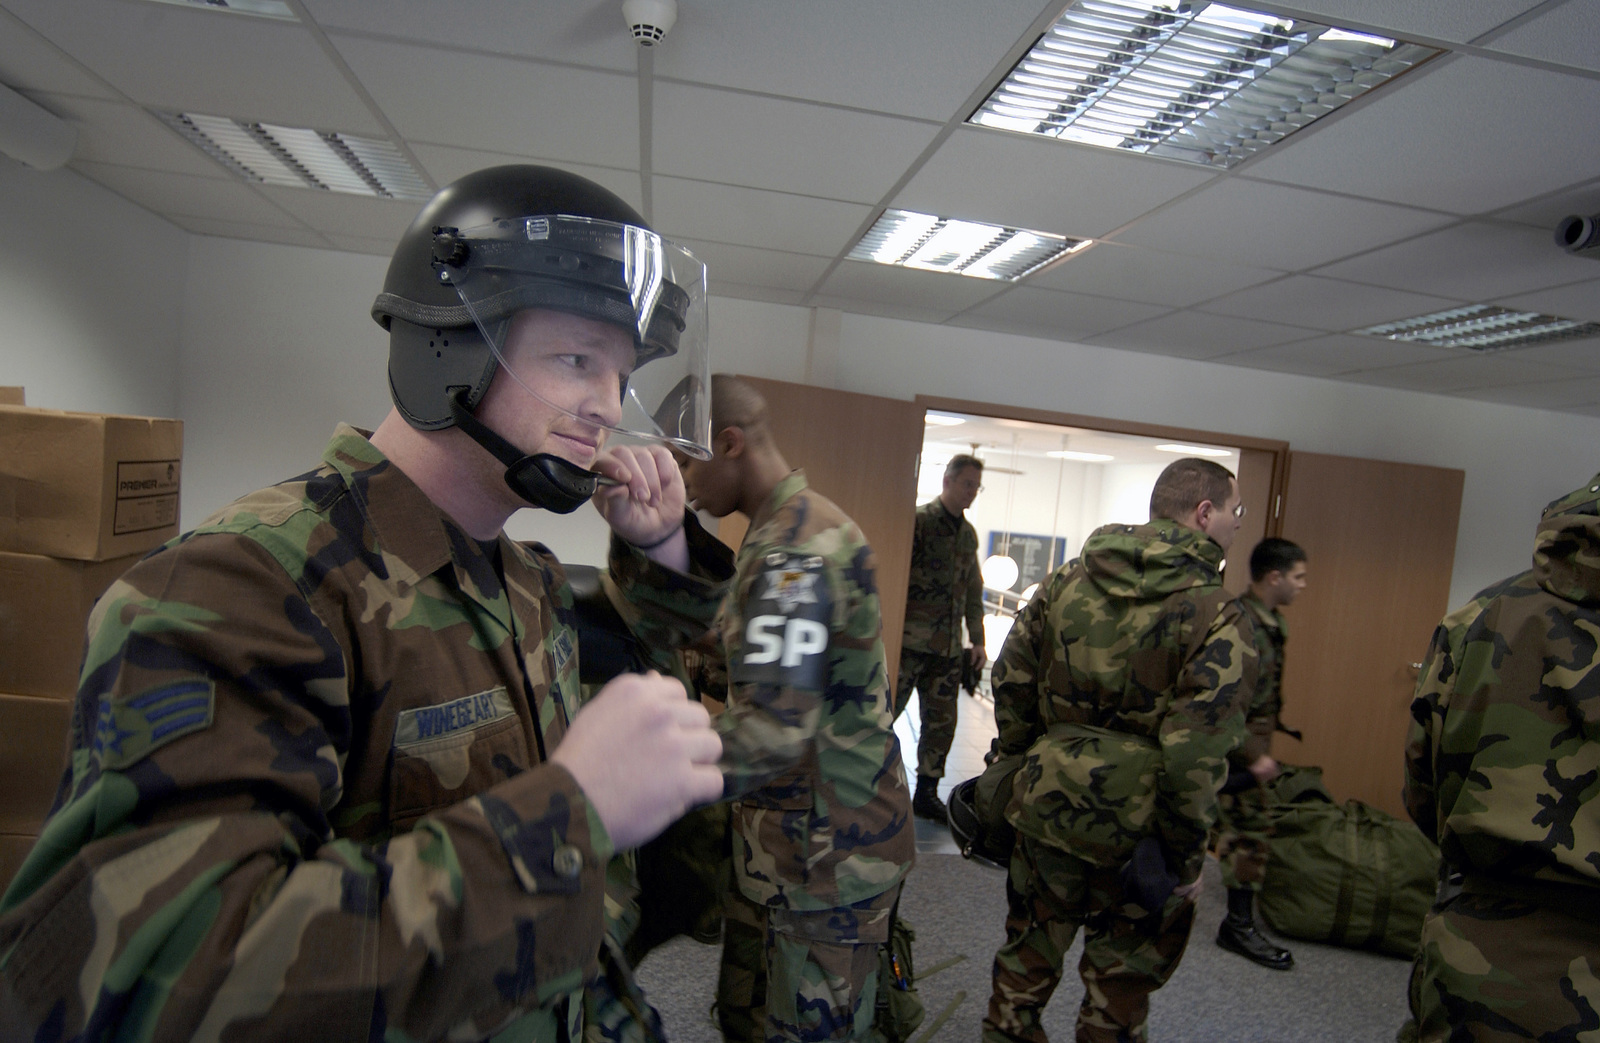 US Air Force (USAF) SENIOR AIRMAN (SRA) Erik Winegeart (foreground), 569th Security Forces Squadron (SFS), dons a riot control helmet before participating in training scenario at Vogelweh Air Station (AS), Kaiserslautern, Germany